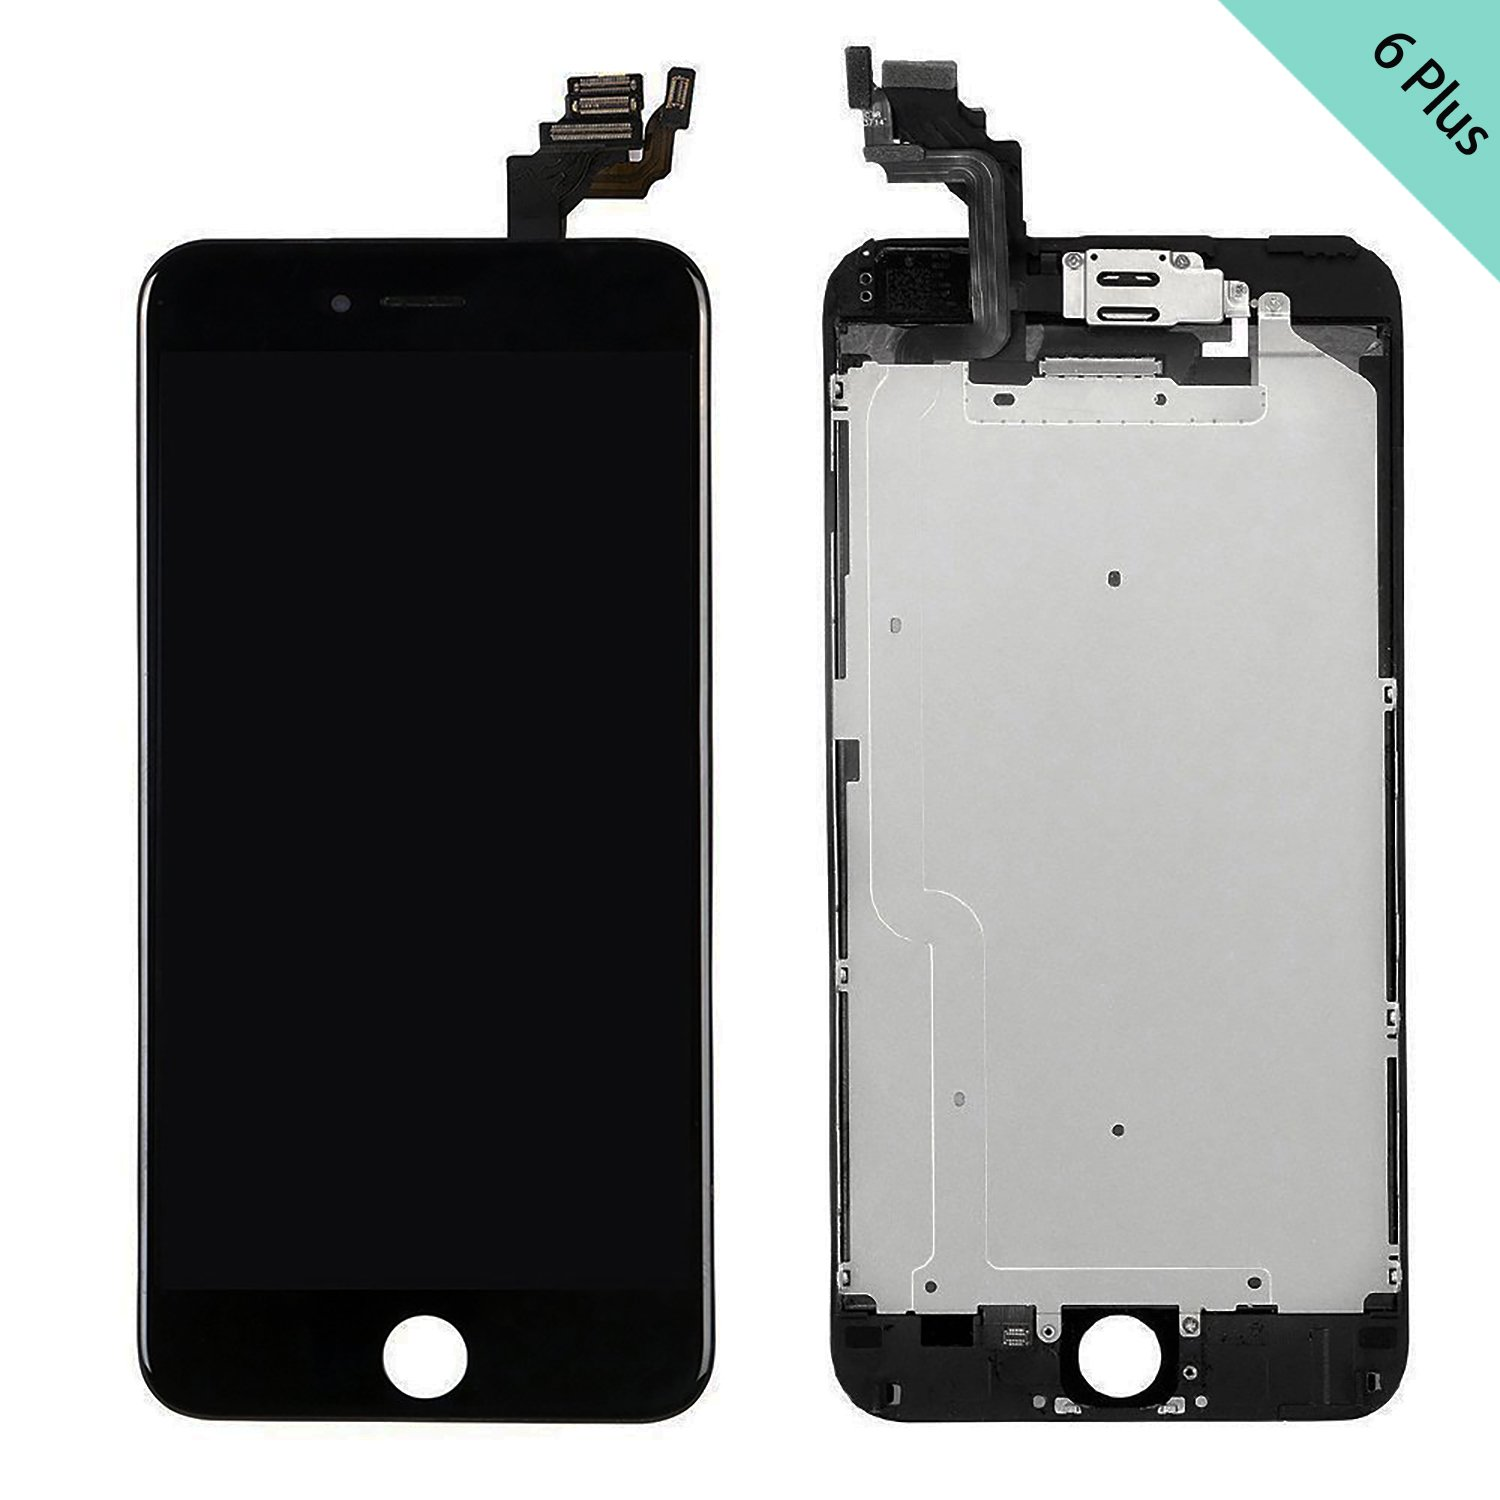 Front Camera Screen Replacement for iPhone 6 Plus - LCD Display Touch Digitizer Frame Assembly Set with Proximity Sensor Repair Tools and Instruction Tempered Glass White Earpiece 5.5